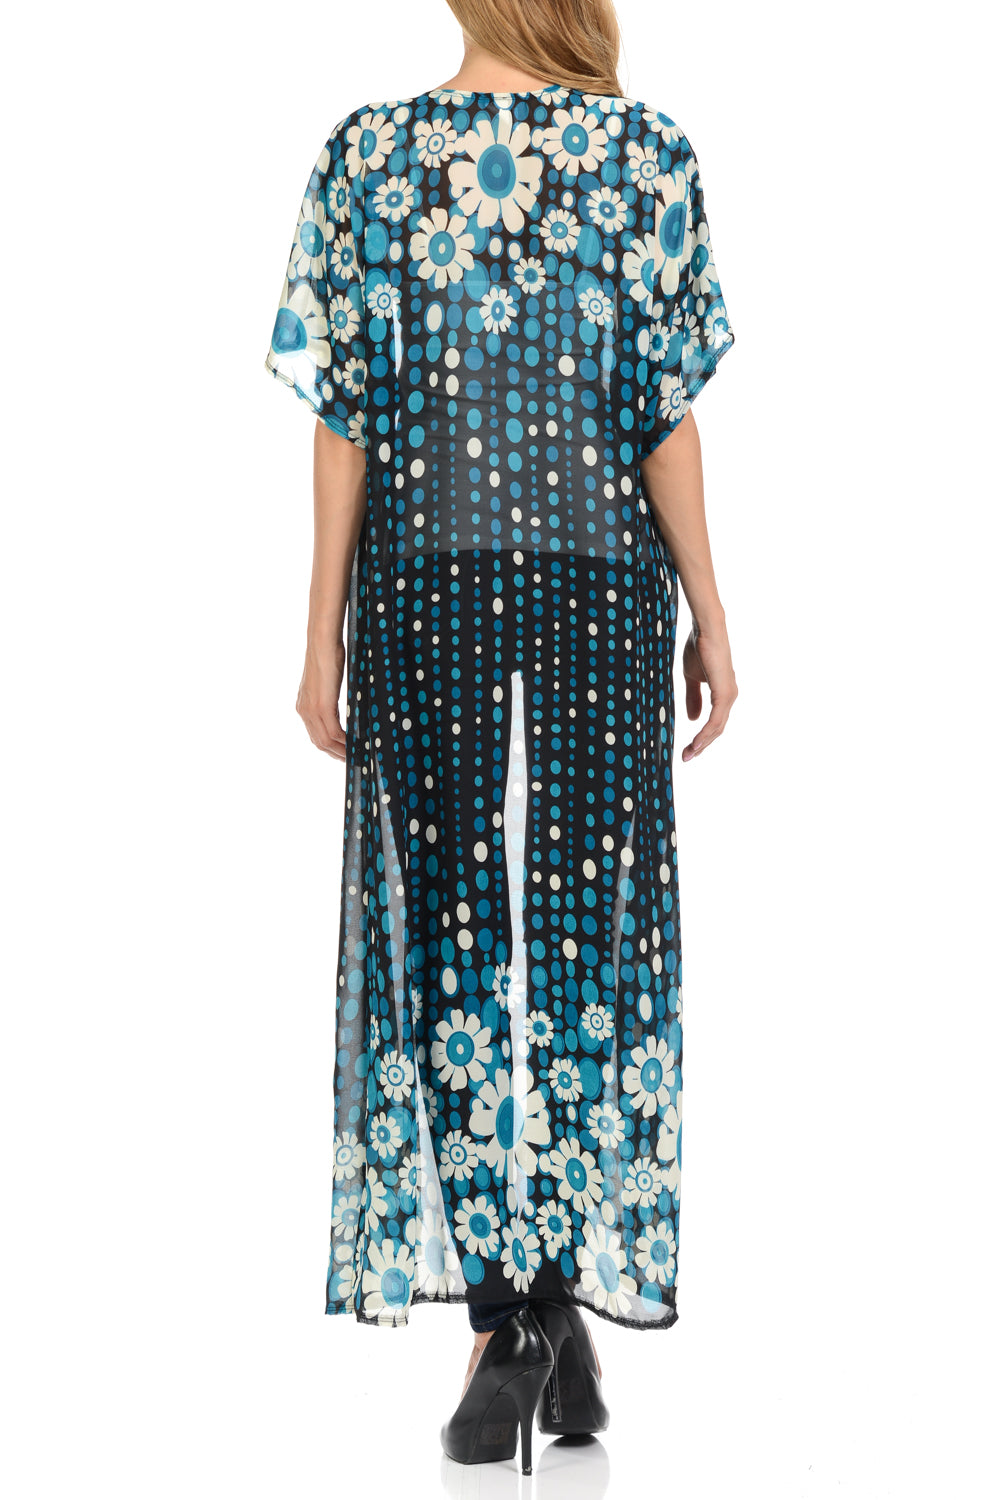 311882cbae ... Long maxi Cardigan See through beach cover up Trendy Fashion item Four  seasons BlackTeal Color ...